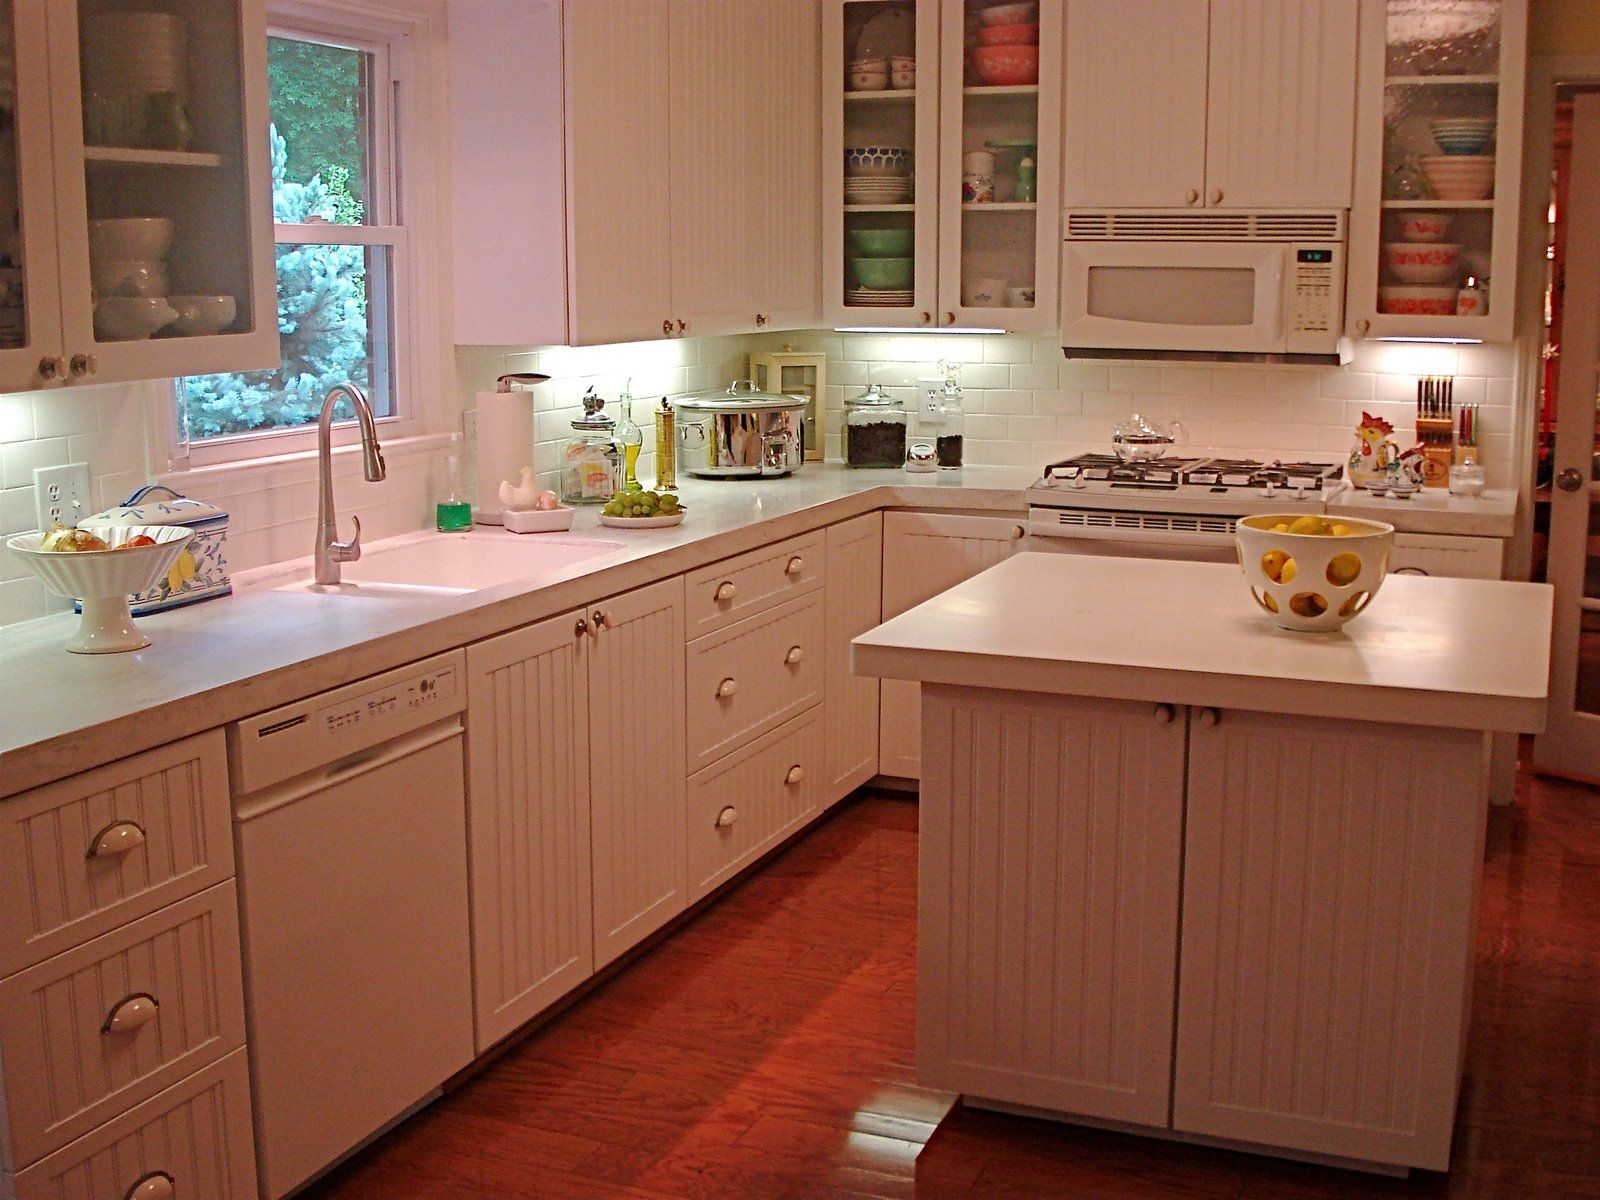 Corian Rain Cloud Countertops White Appliances Light Cabinets